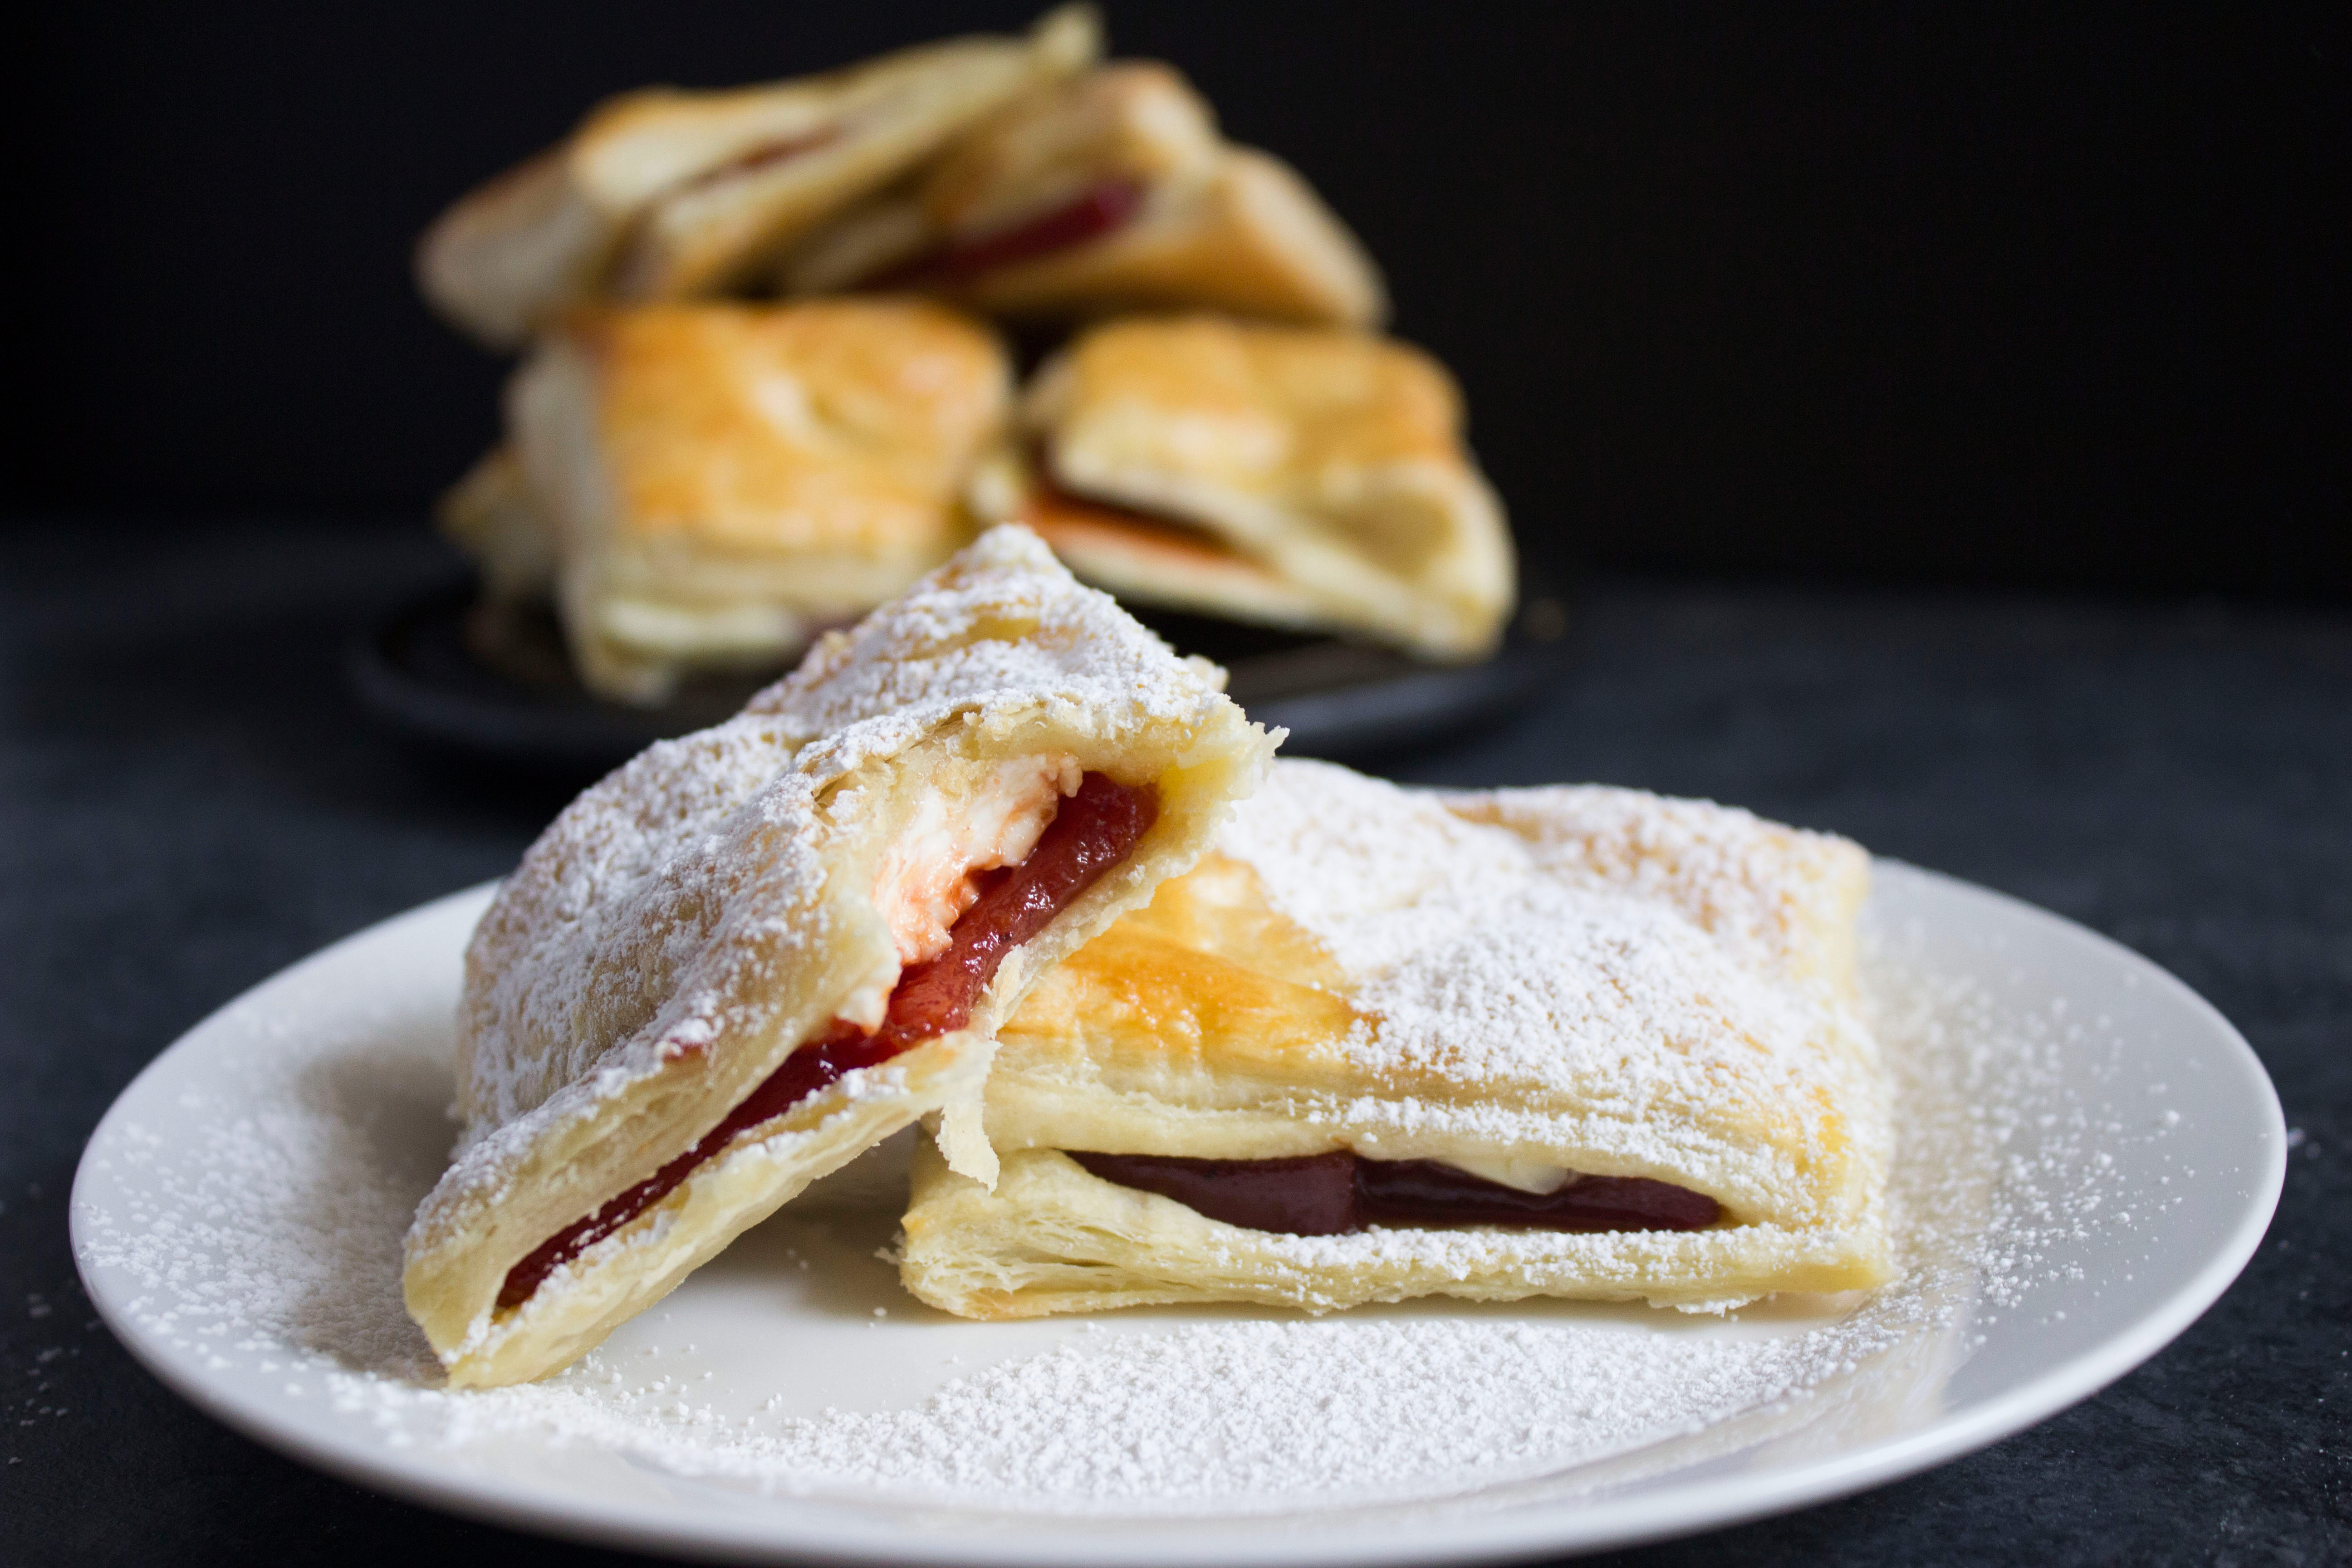 Guava Cream Cheese Pastries